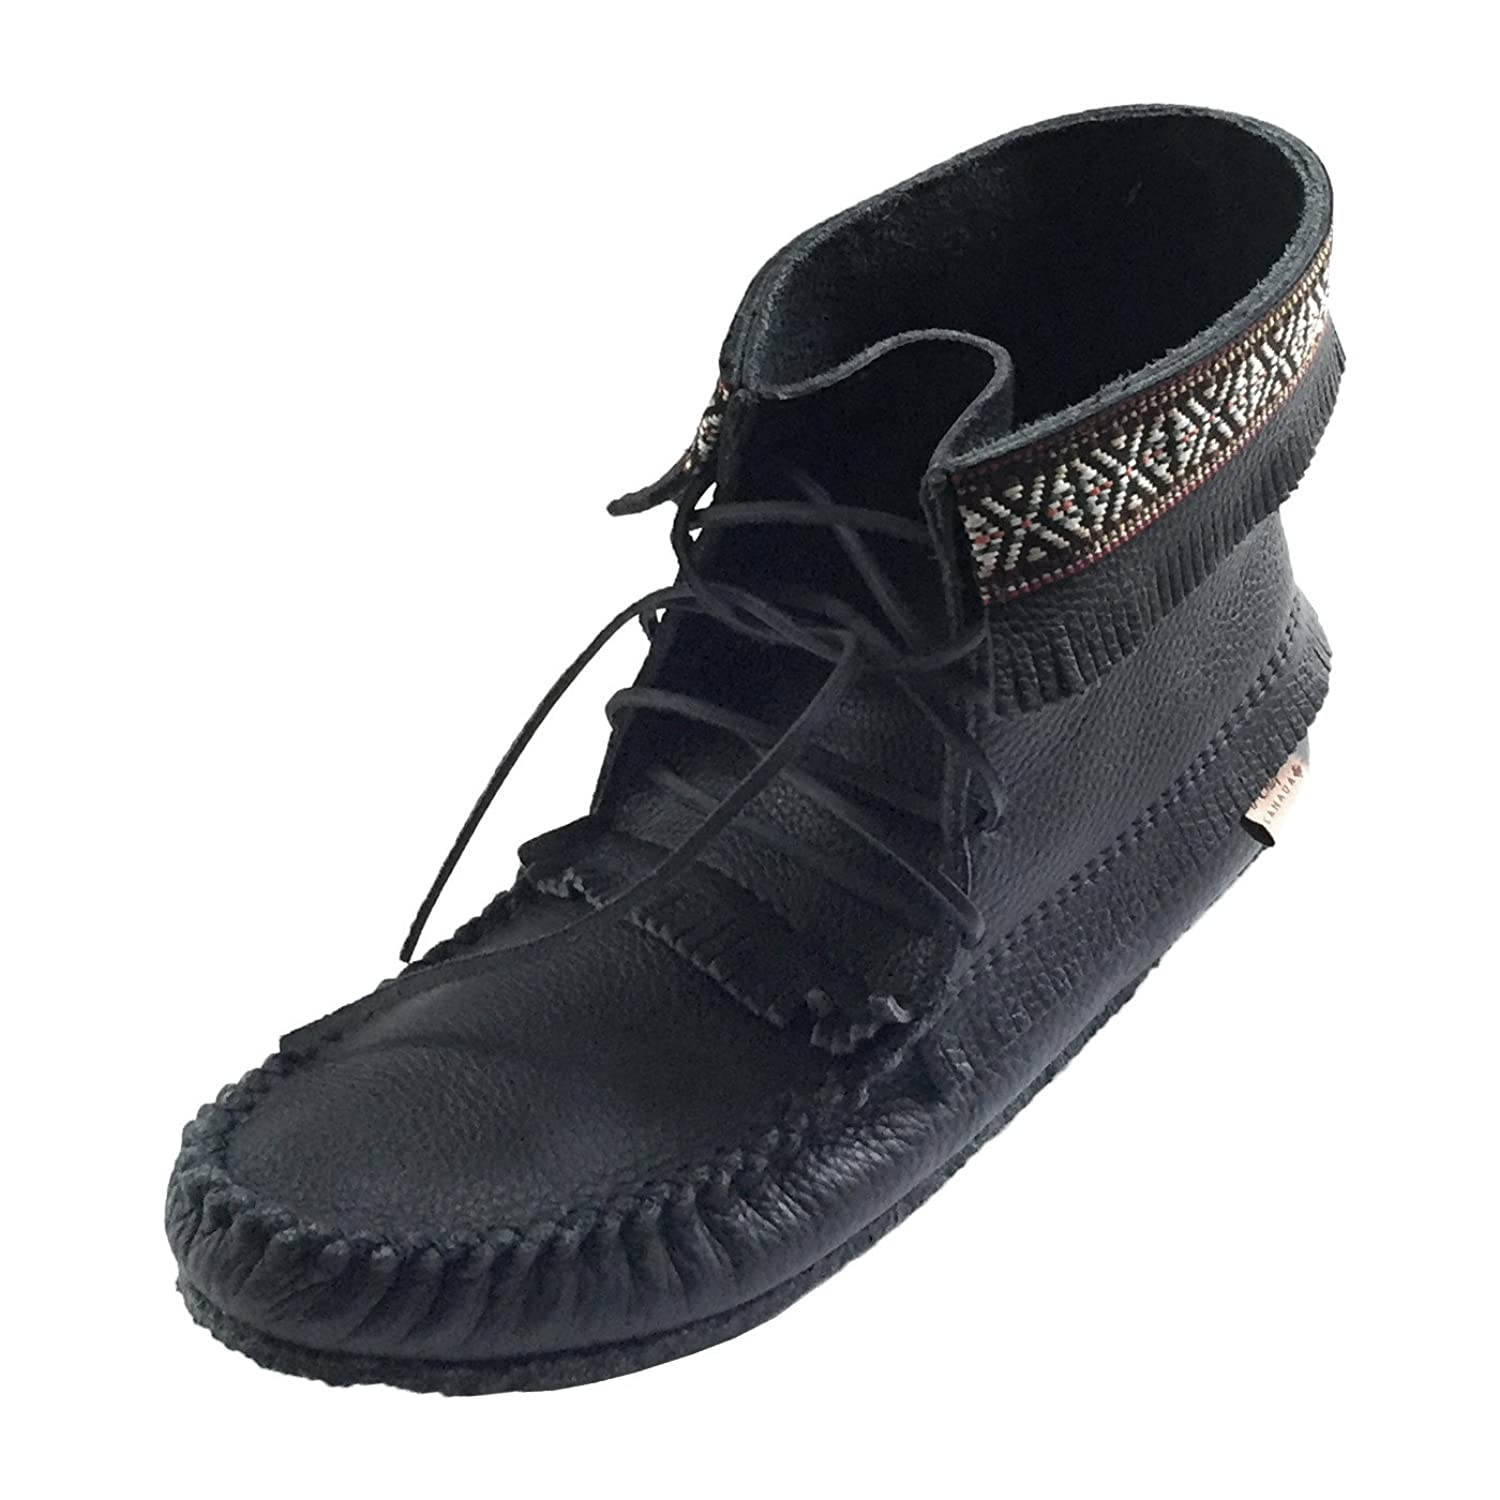 Men's Fringe and Braid Black Apache Moccasin Boots